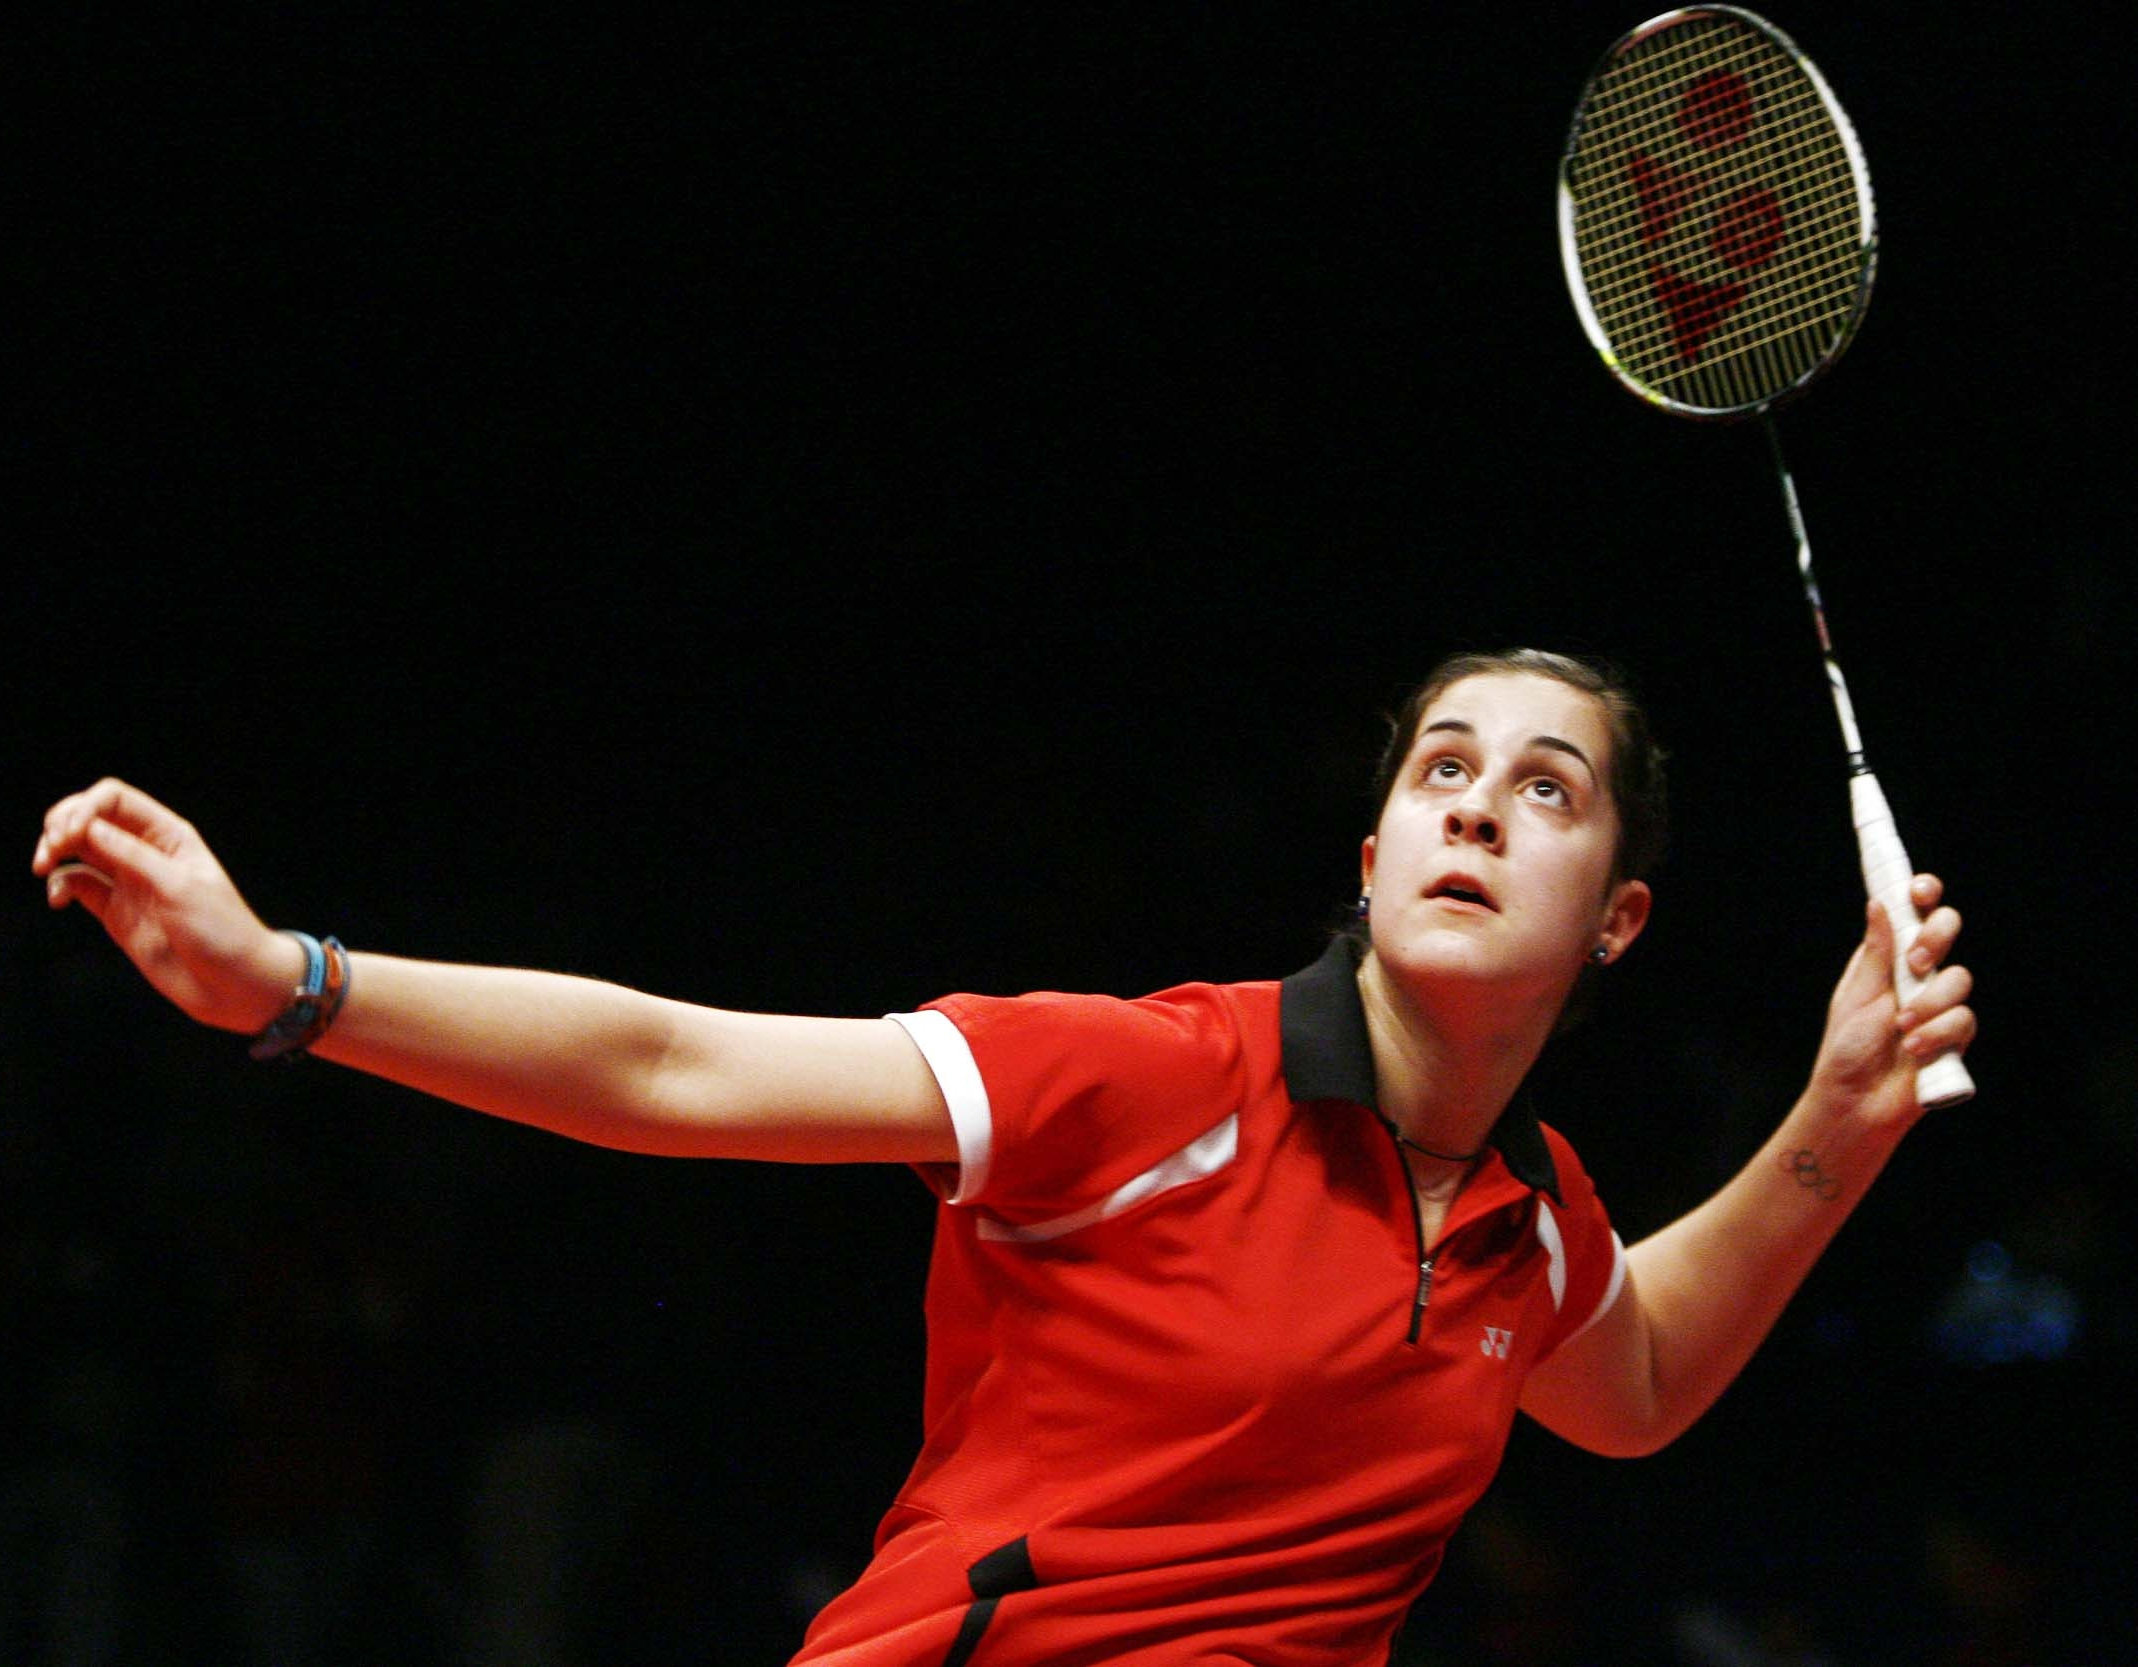 Carolina Marin gives her medals to medical professionals in Spain for service amid Covid-19 pandemic